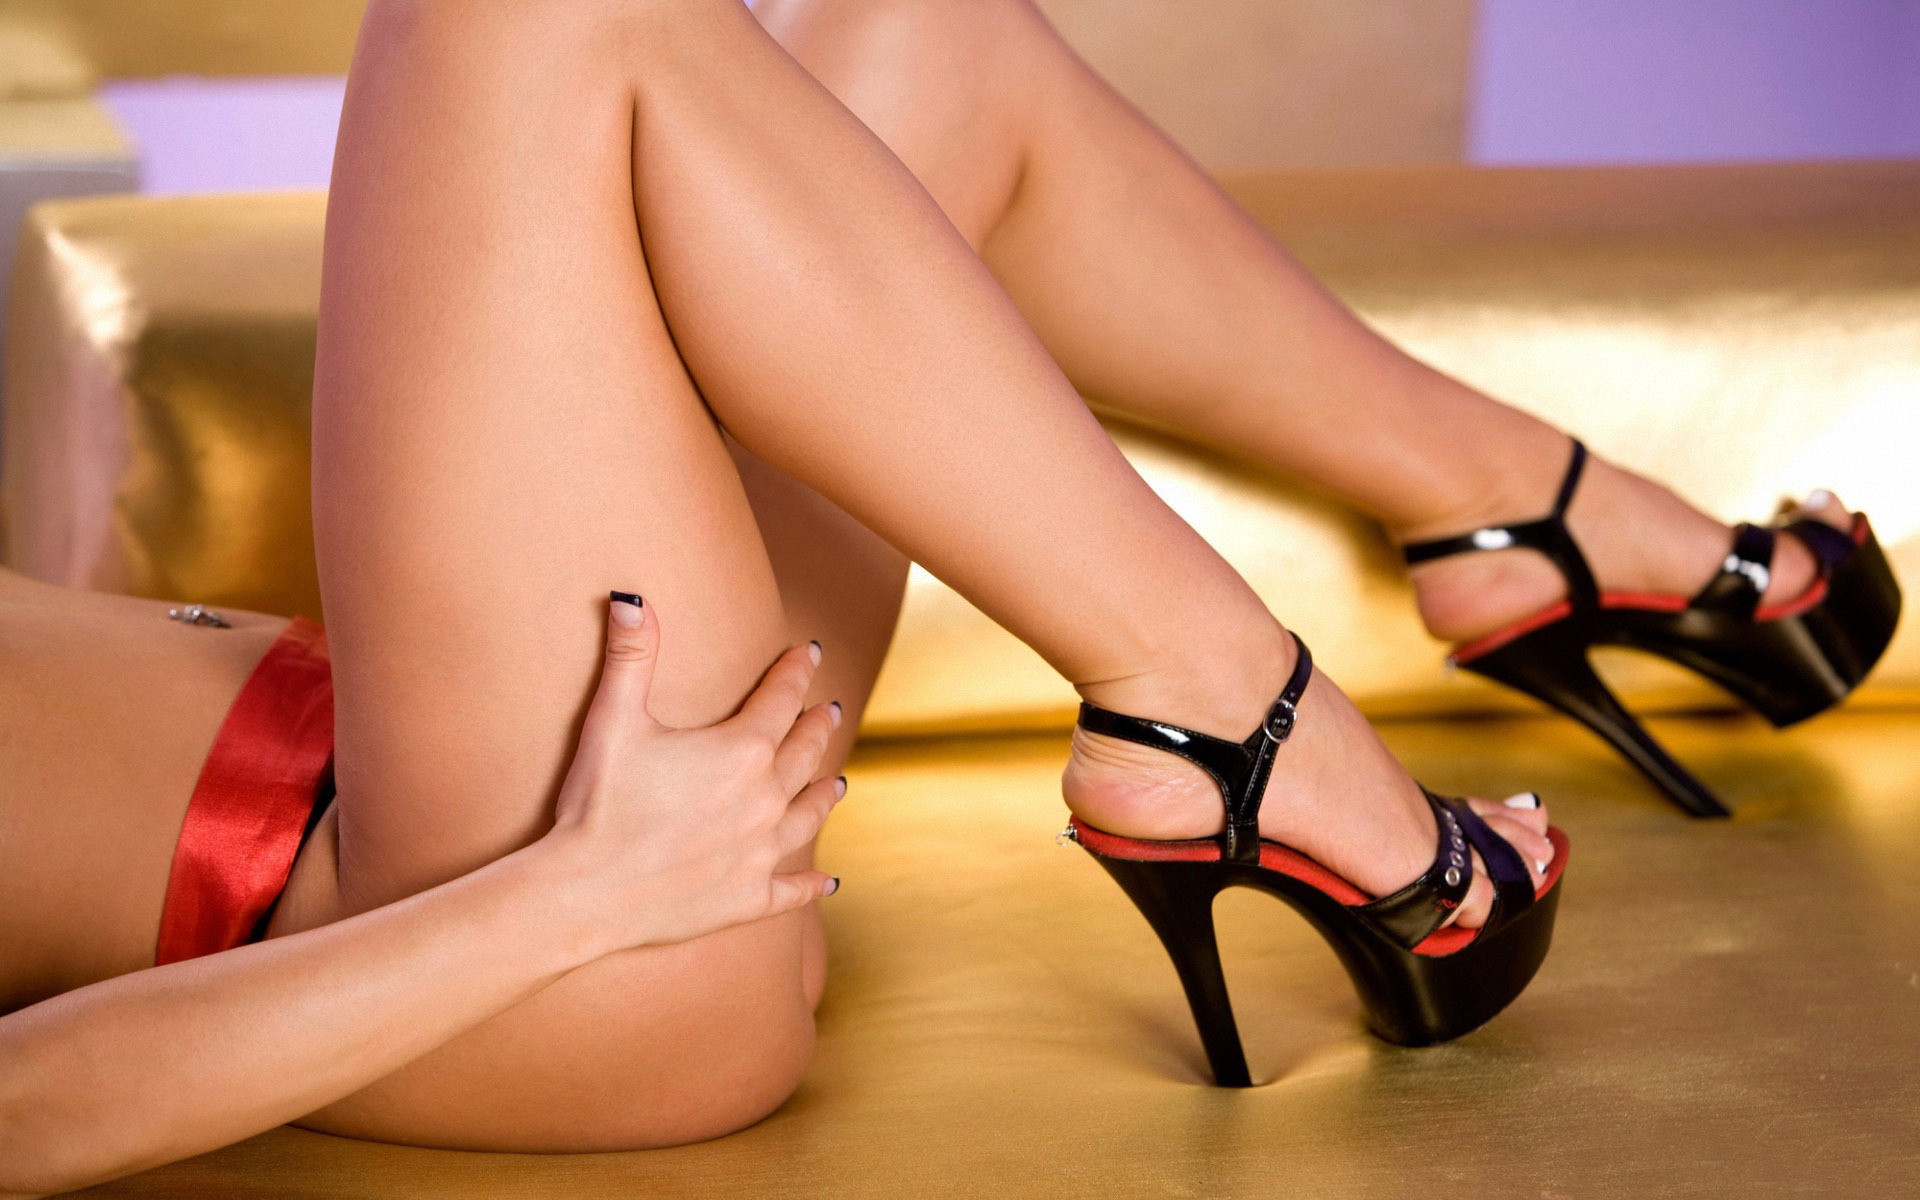 Female legs in black fishnet stockings and red shoes on high heels stock photo